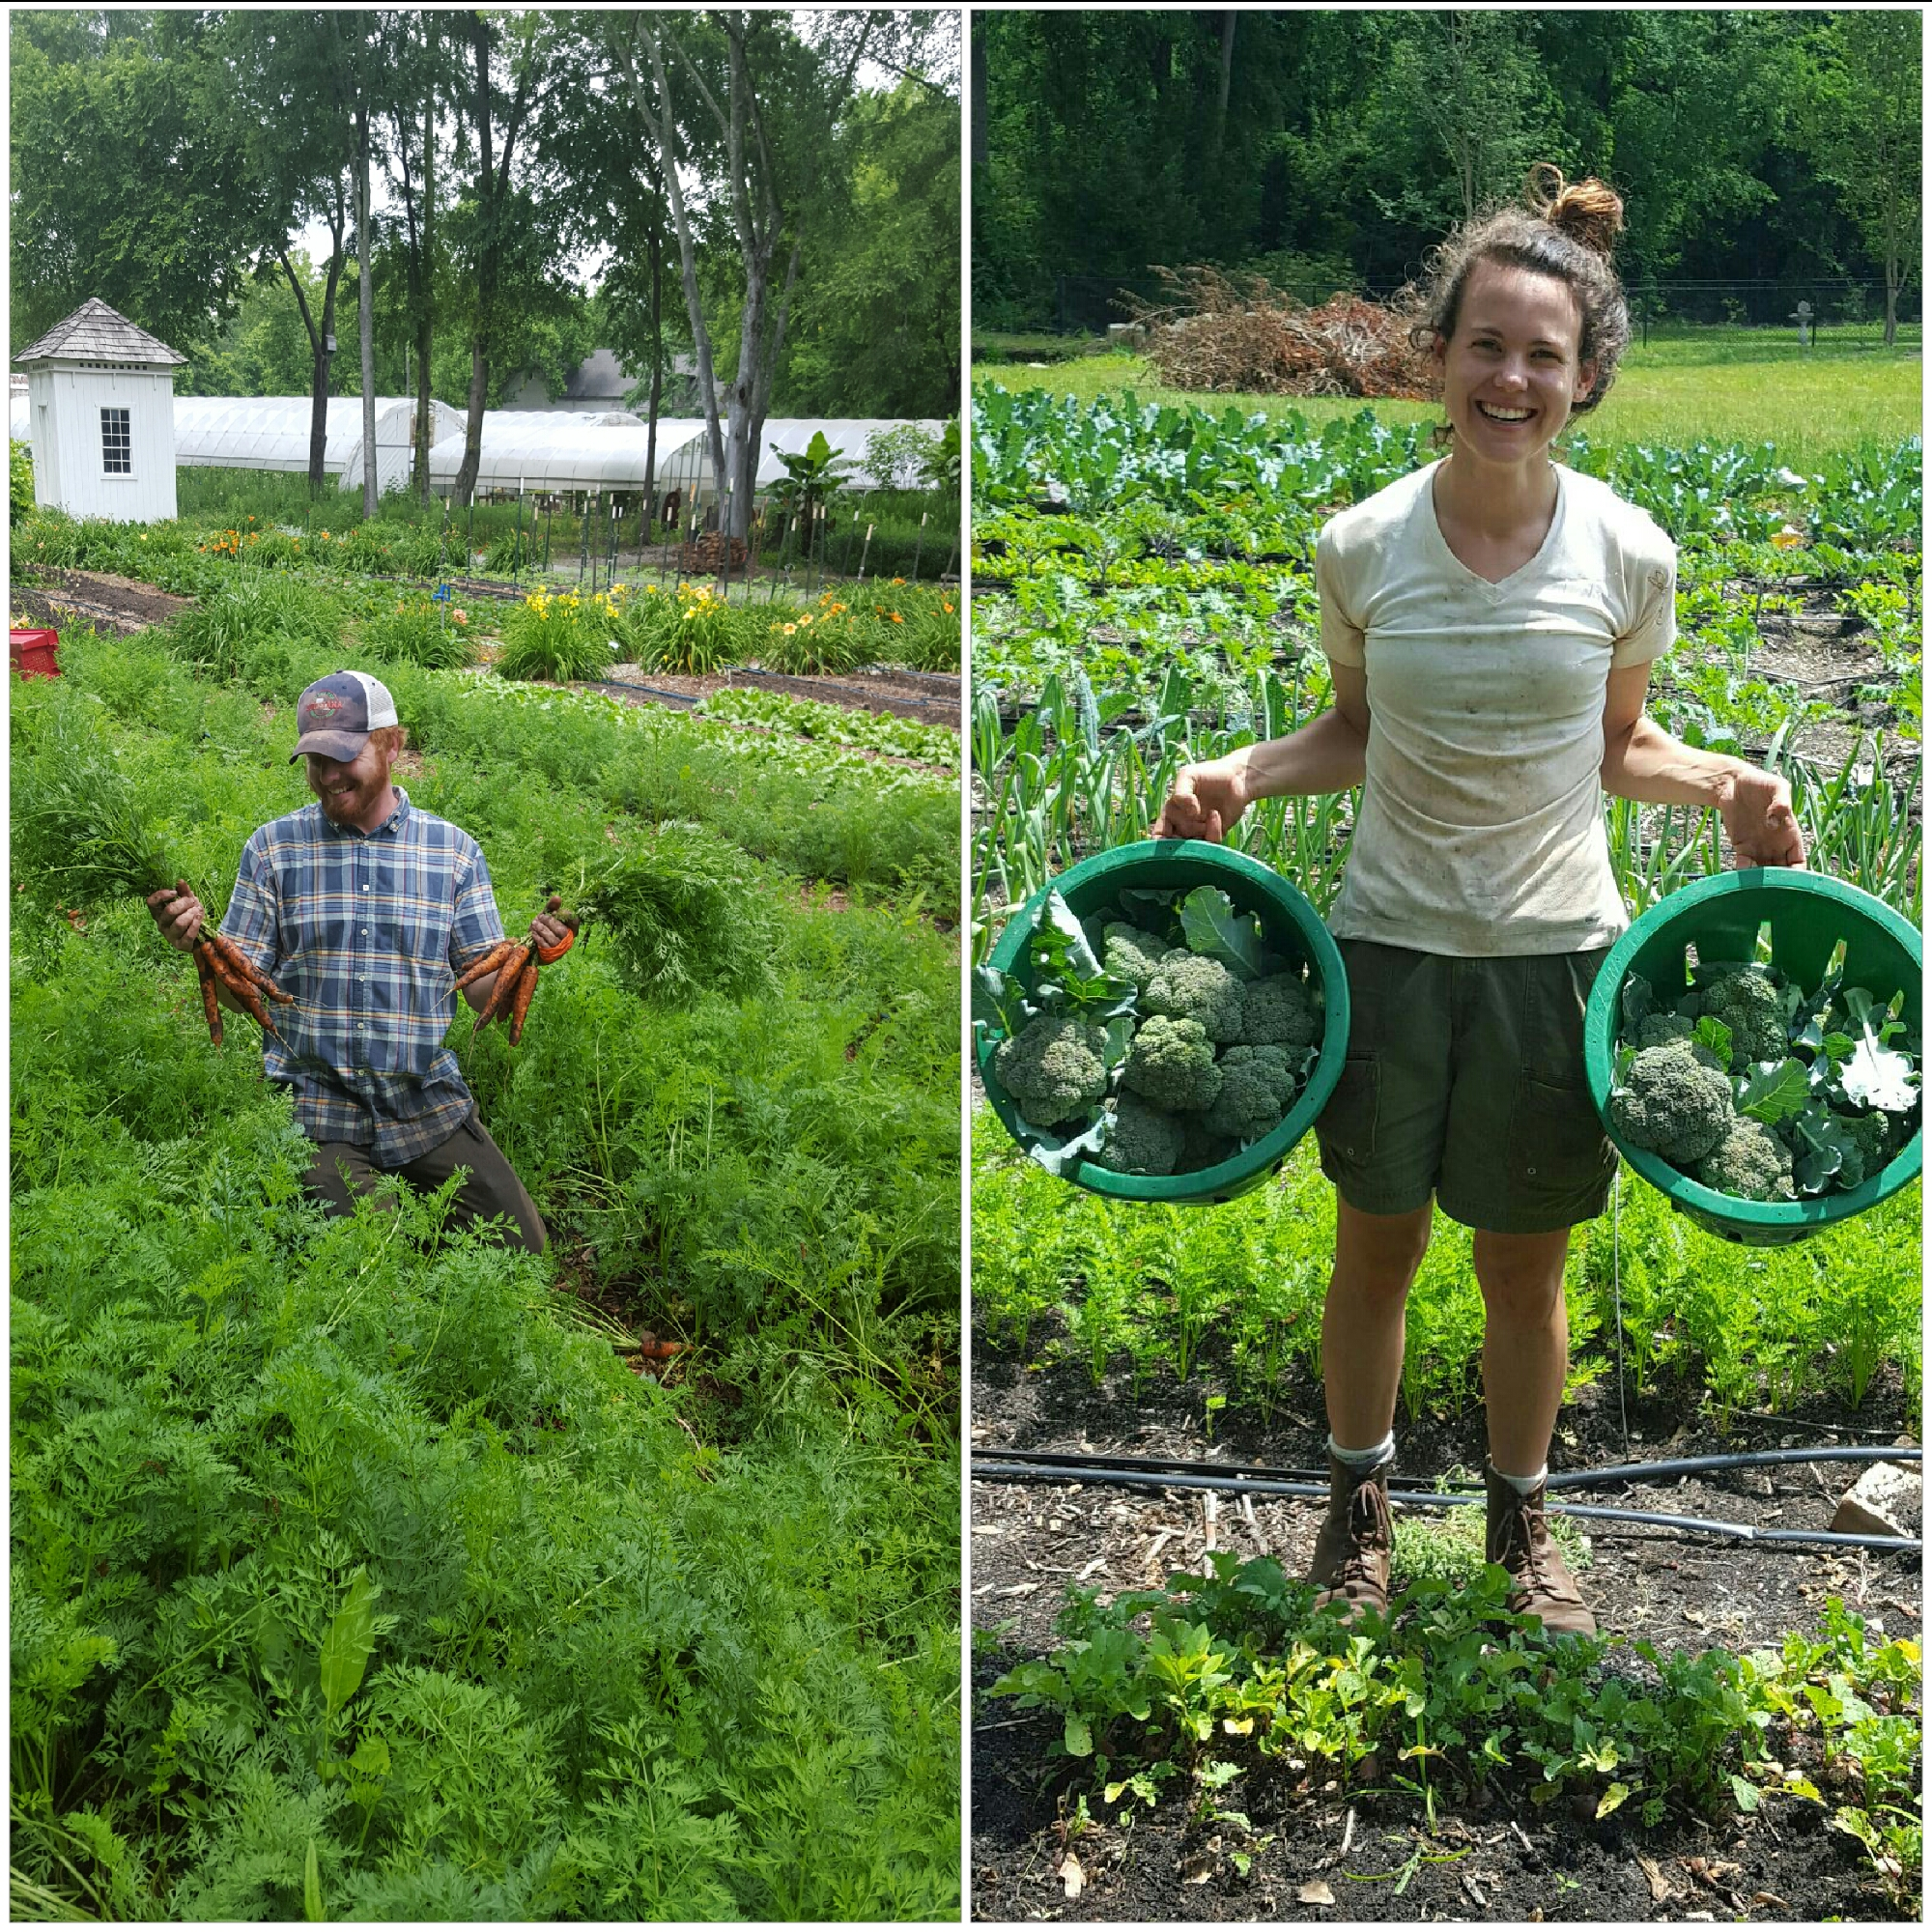 Elm Street Gardens managers, Josh and Jessica, are looking forward to welcoming local customers to the farm on Tuesdays and Friday from 3 to 5pm every week.